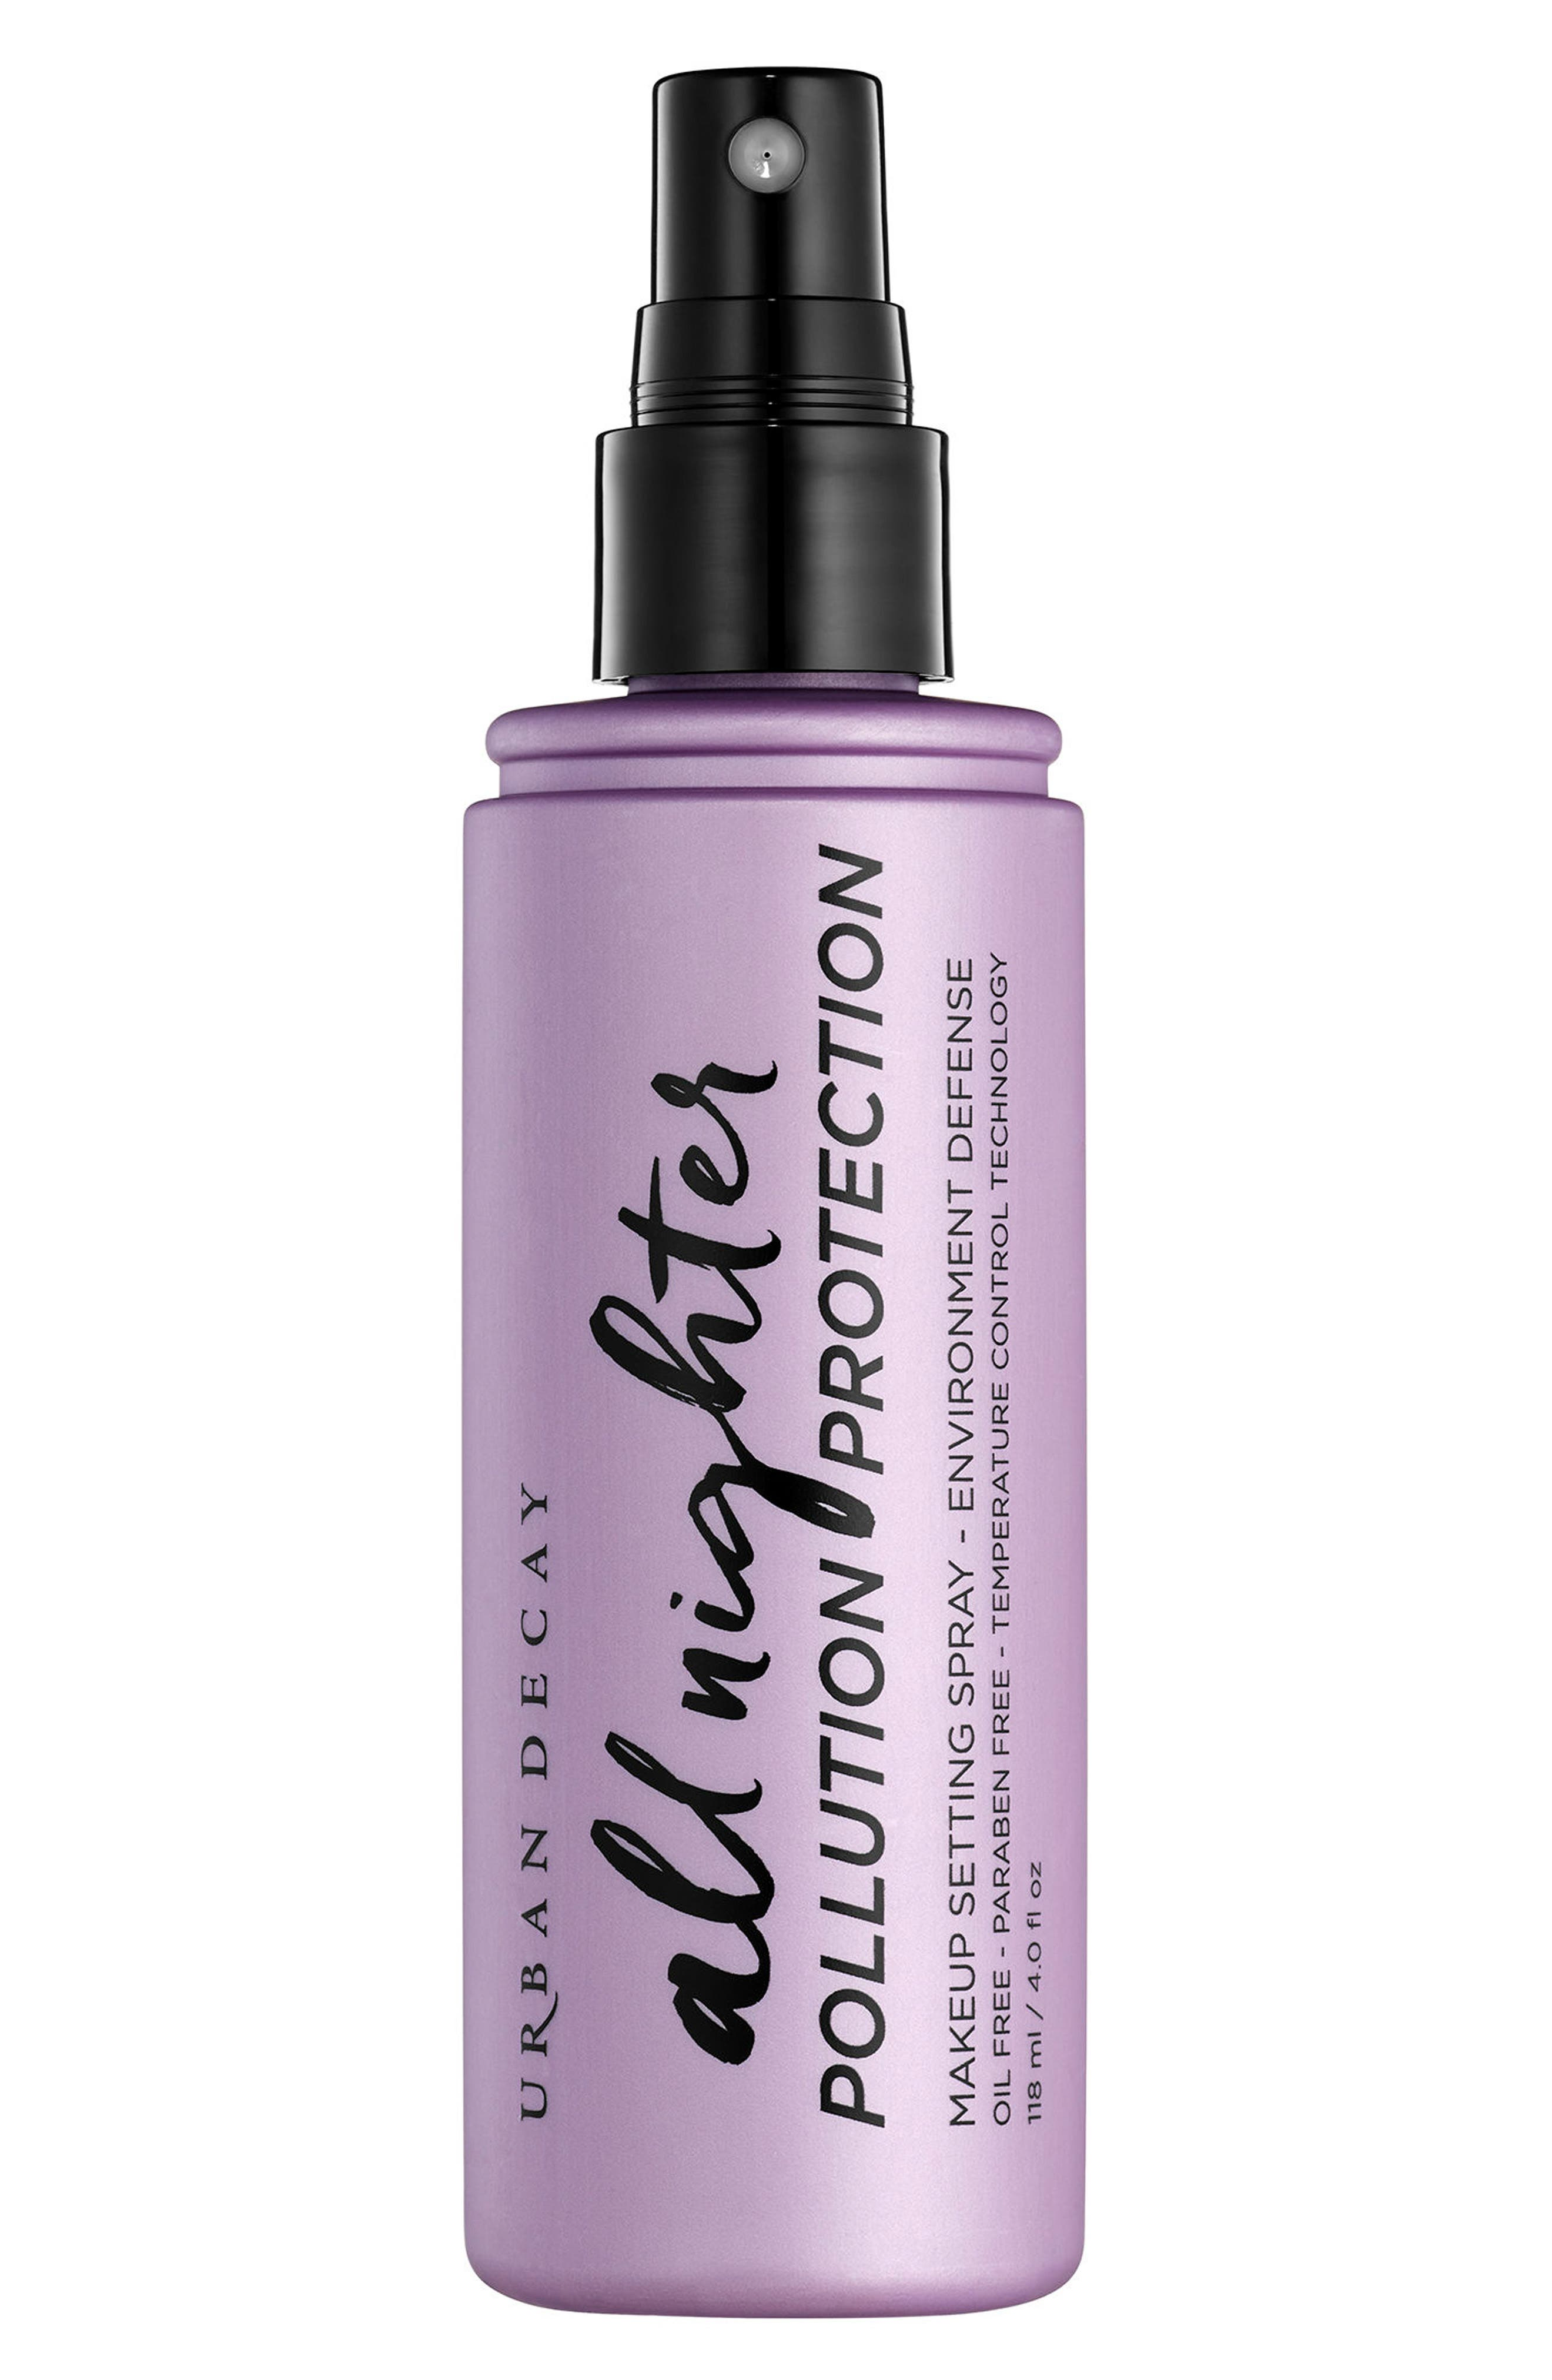 All Nighter Pollution Protection Environmental Defense Makeup Setting Spray,                             Alternate thumbnail 2, color,                             No Color